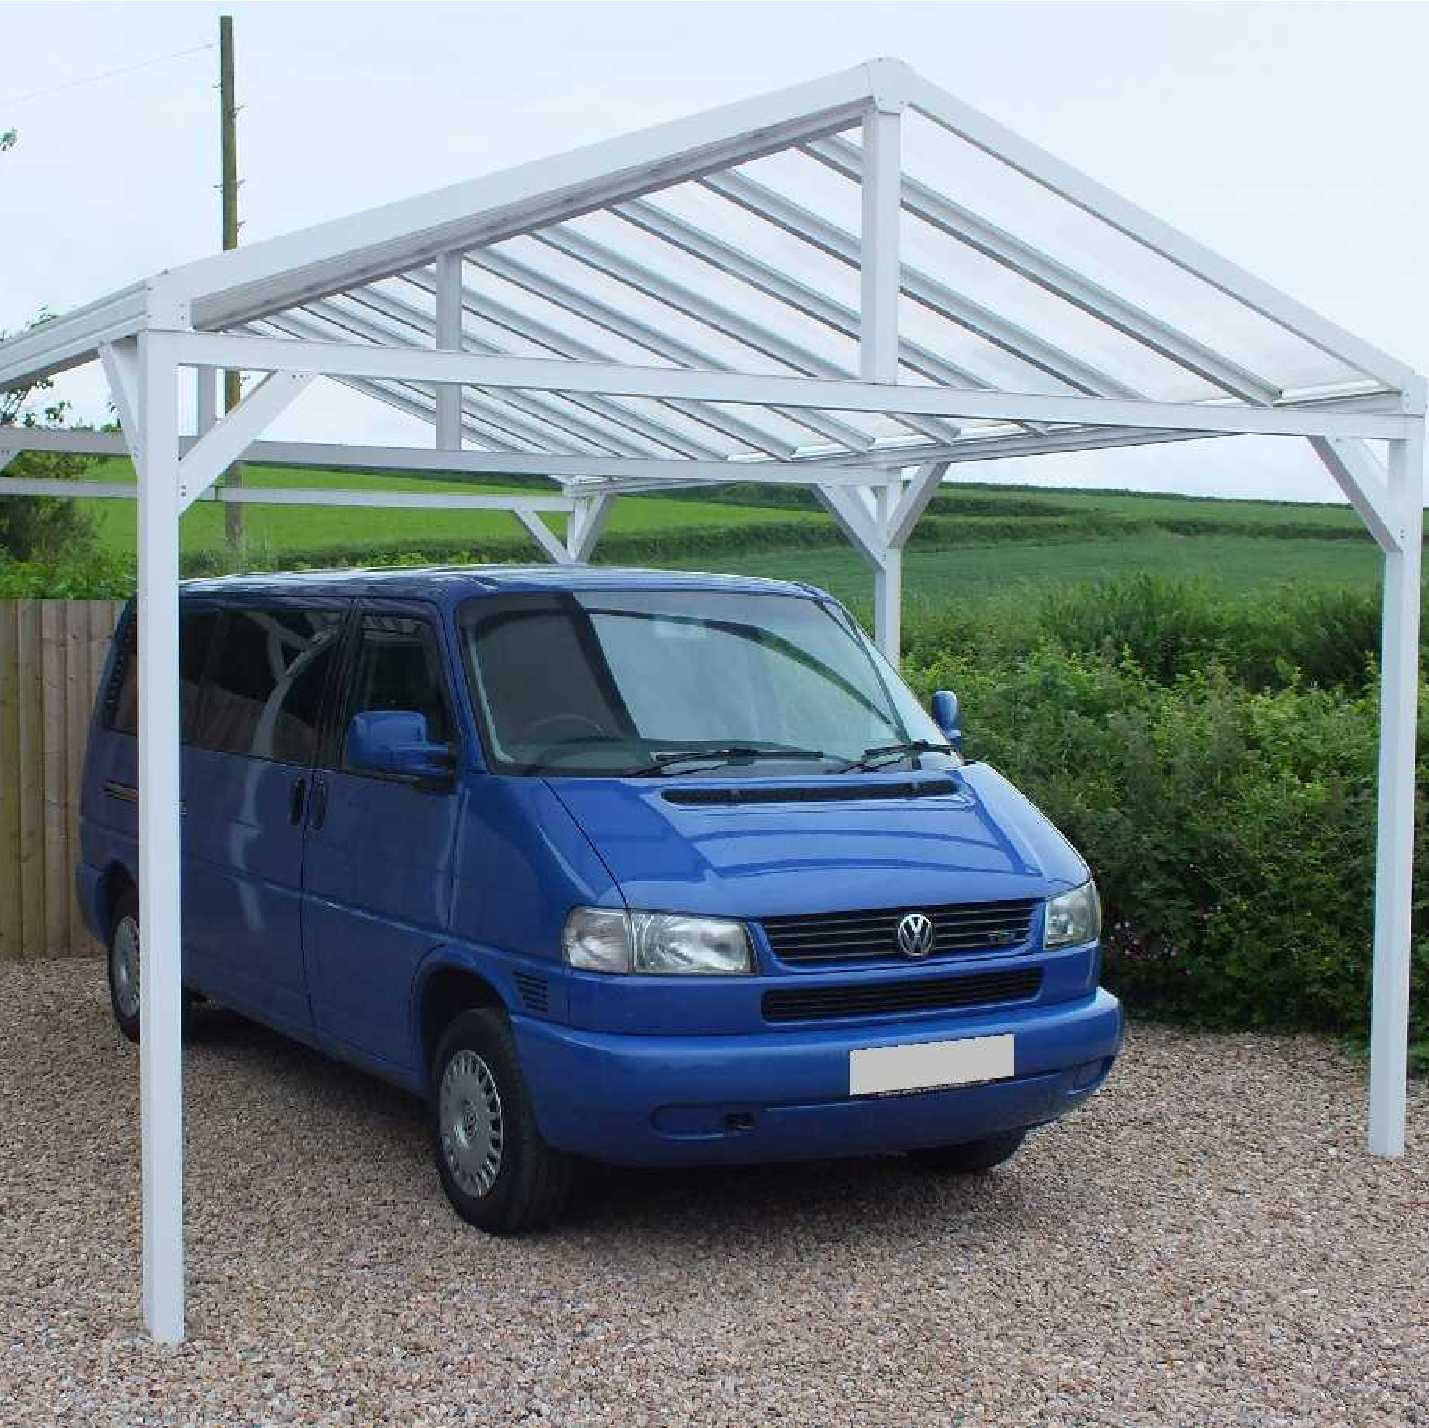 Omega Smart Free-Standing, Gable-Roof (type 1) Canopy with 16mm Polycarbonate Glazing - 7.4m (W) x 3.5m (P), (8) Supporting Posts